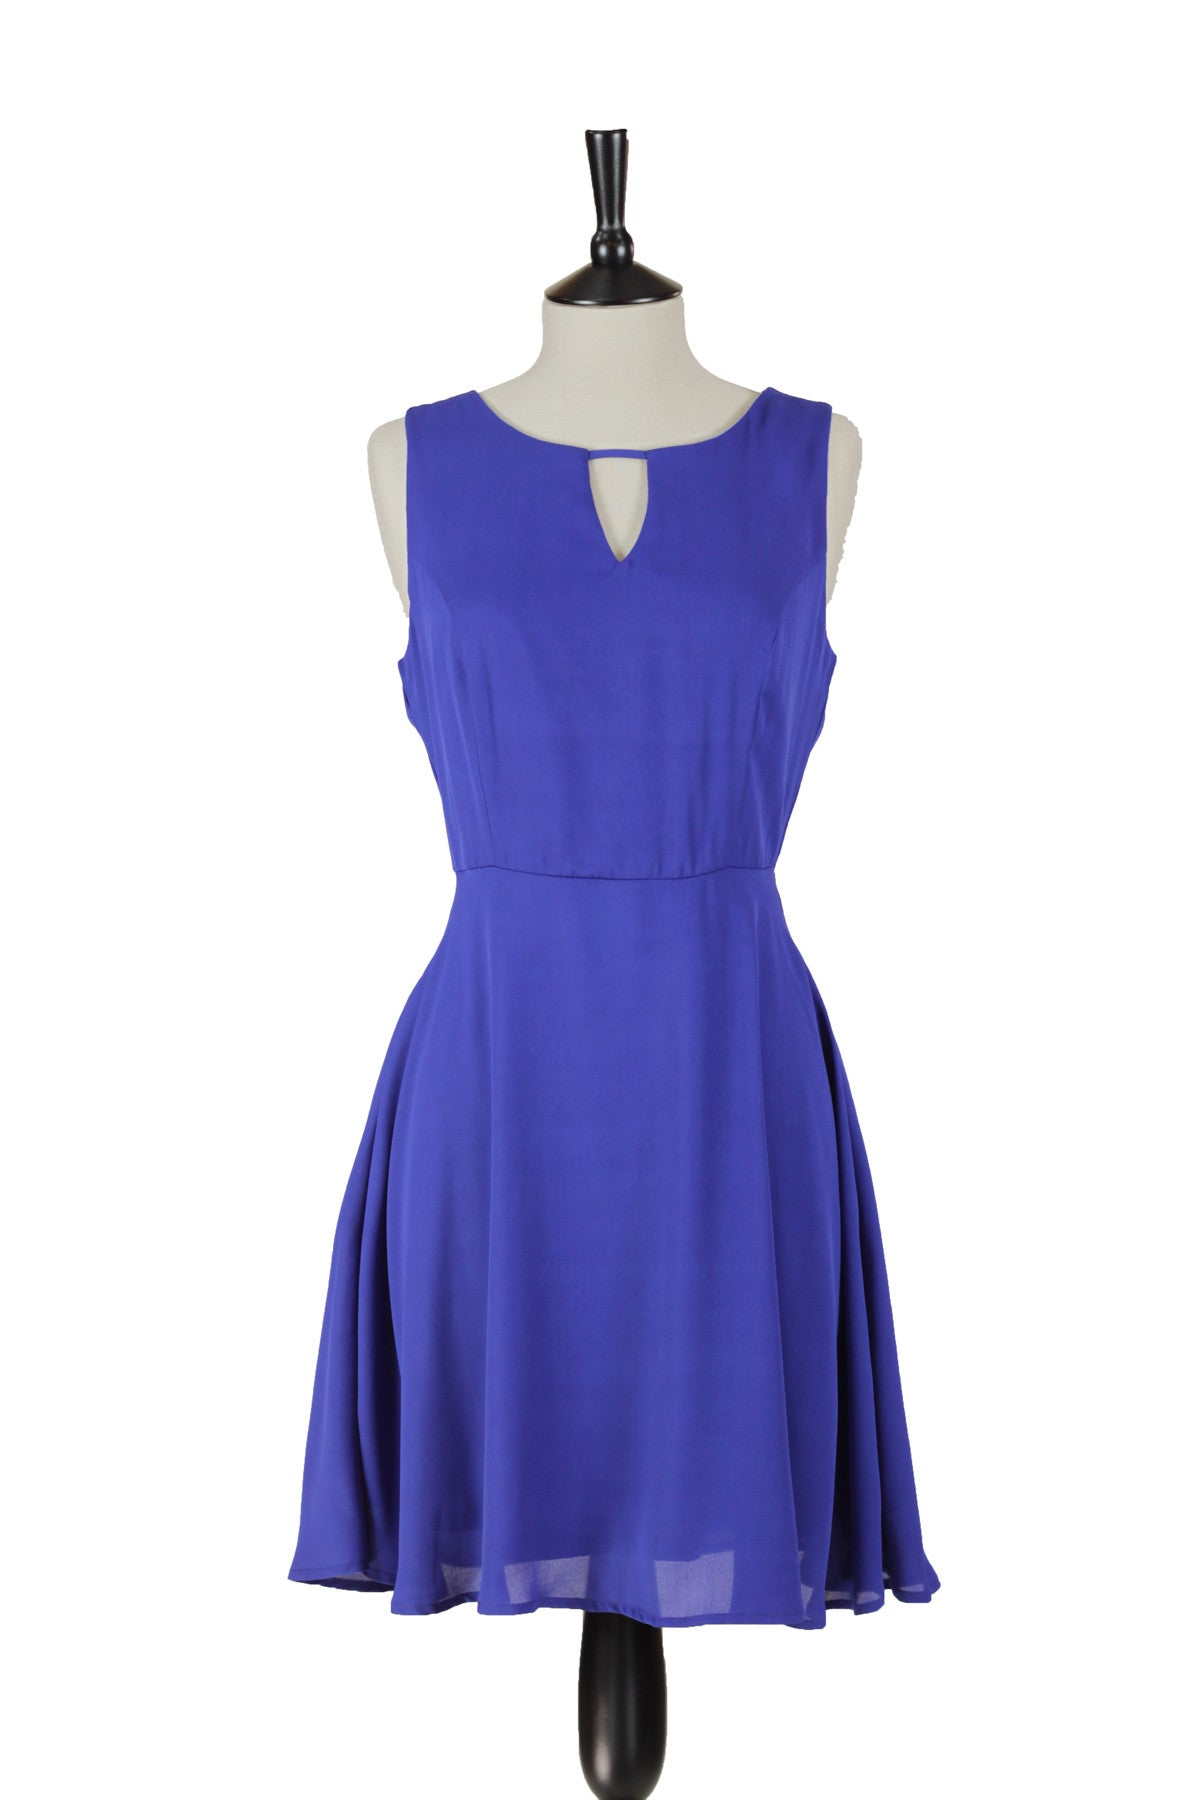 Giada Sleeveless A-Line Dress - Blue